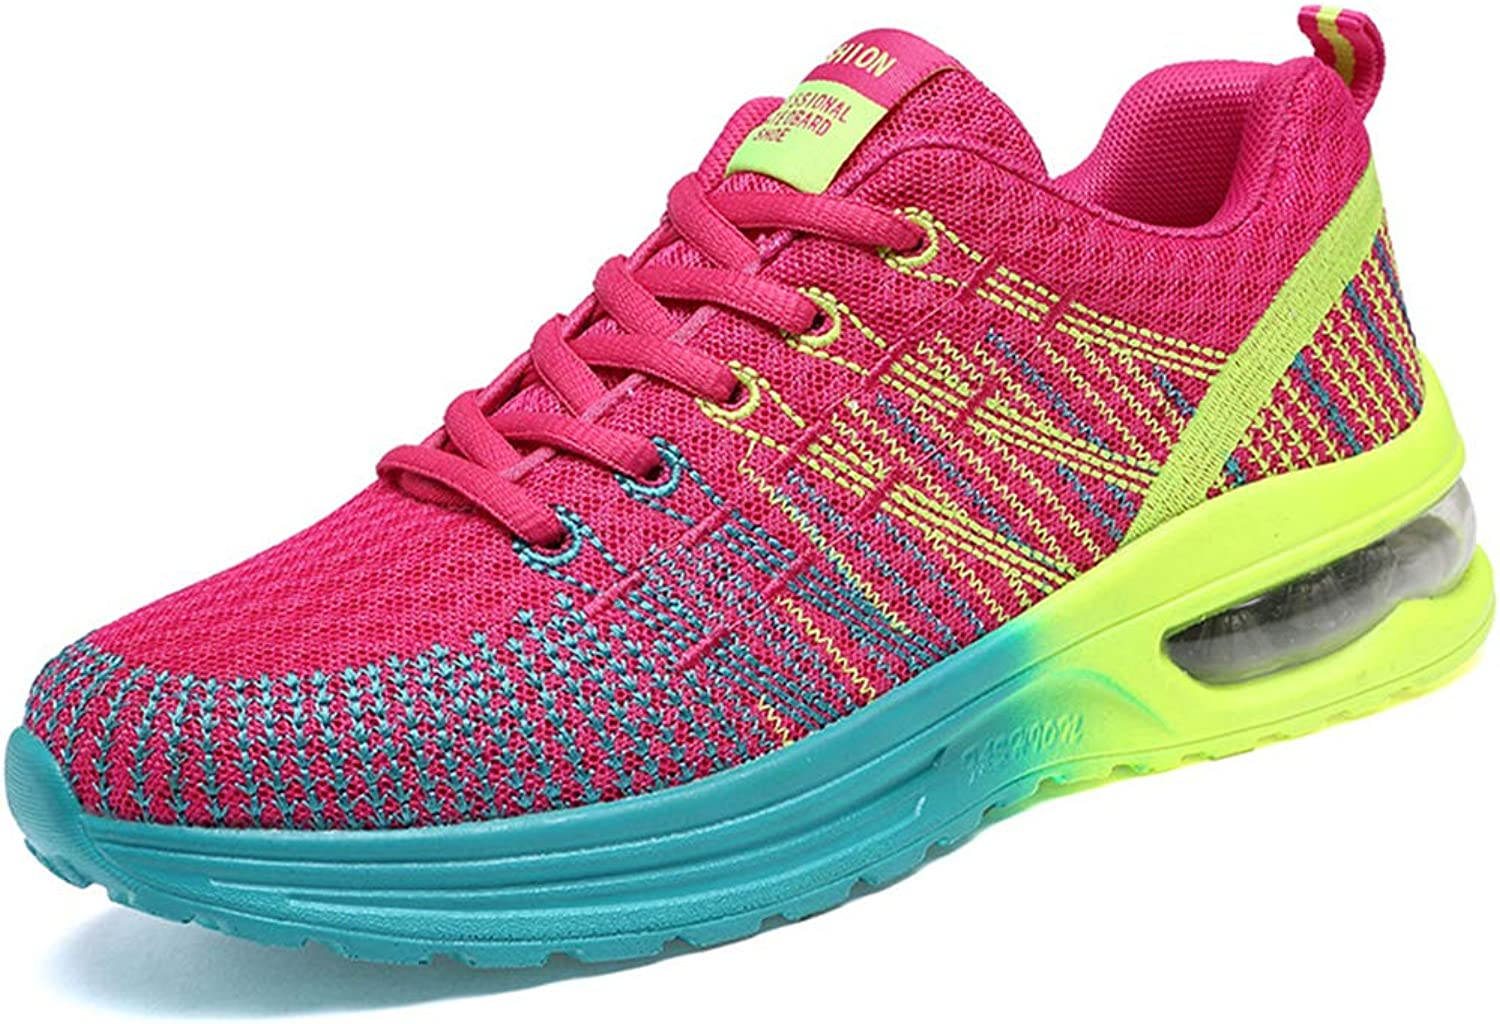 ASO-SLING Women's Mesh Breathable Fashion Sneaker Air Cushion Running Training Athletic Sport shoes